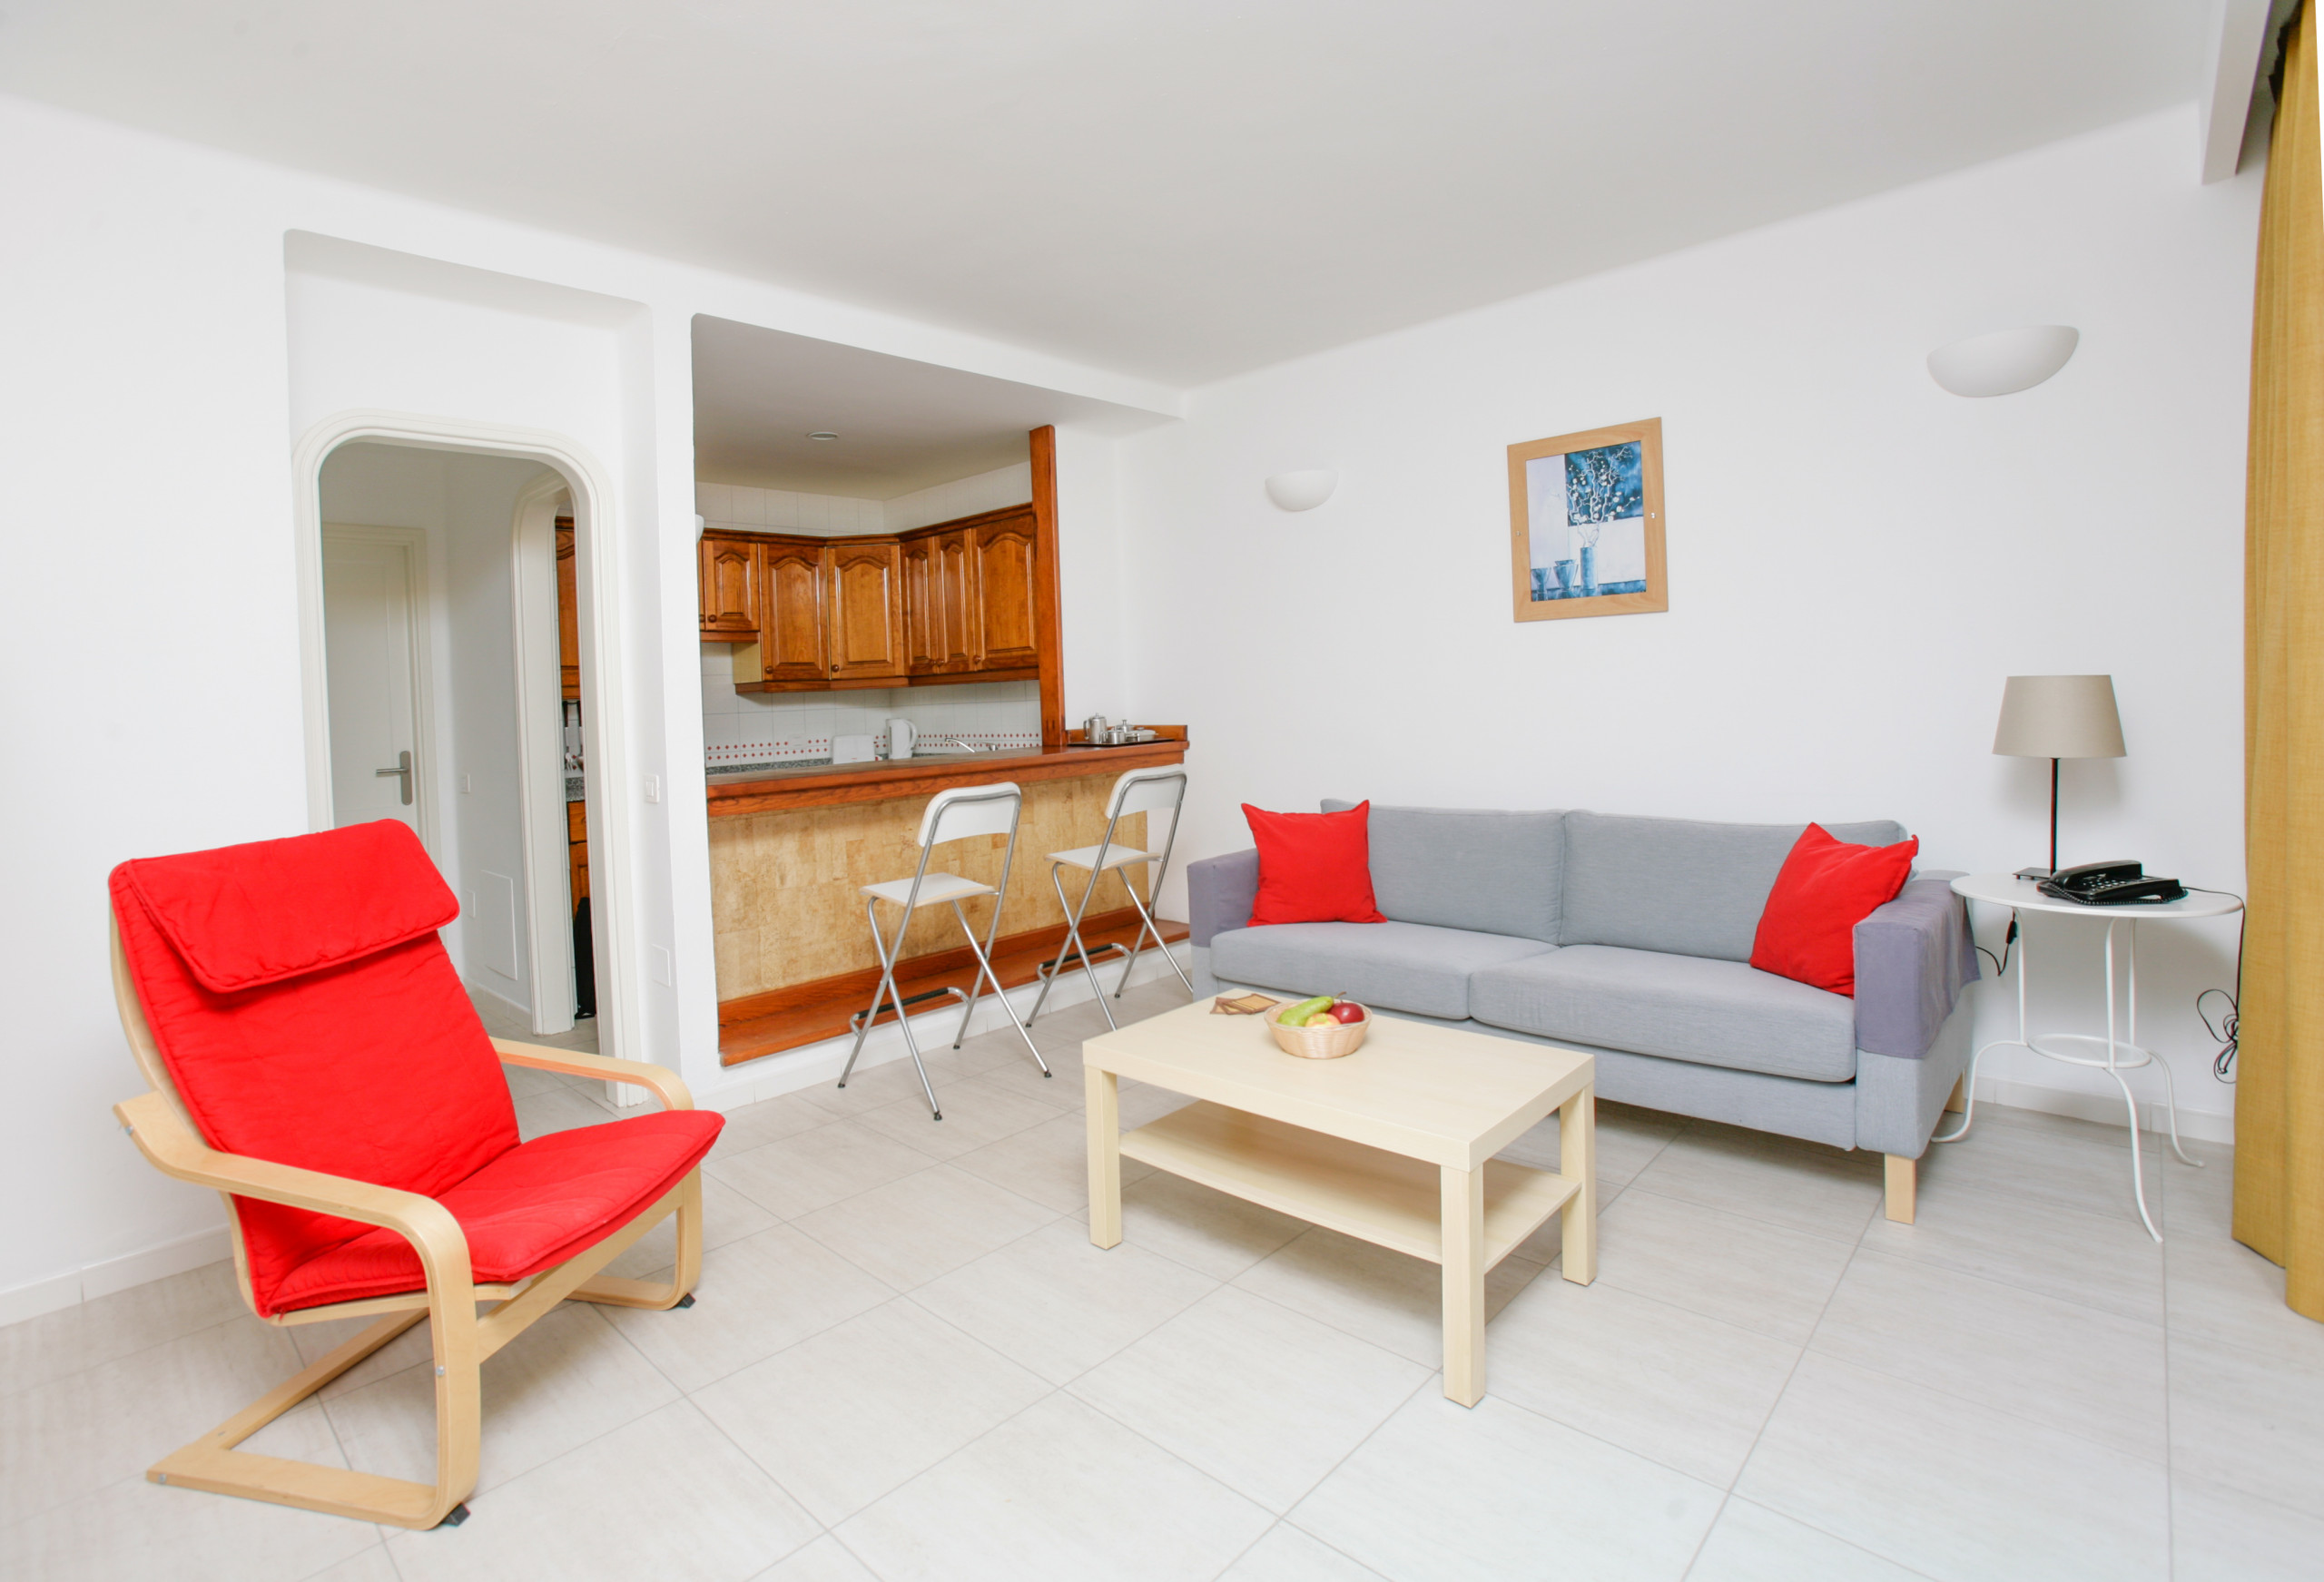 Artement à Puerto Del Carmen Club Oceano 1 Bedroom Apts